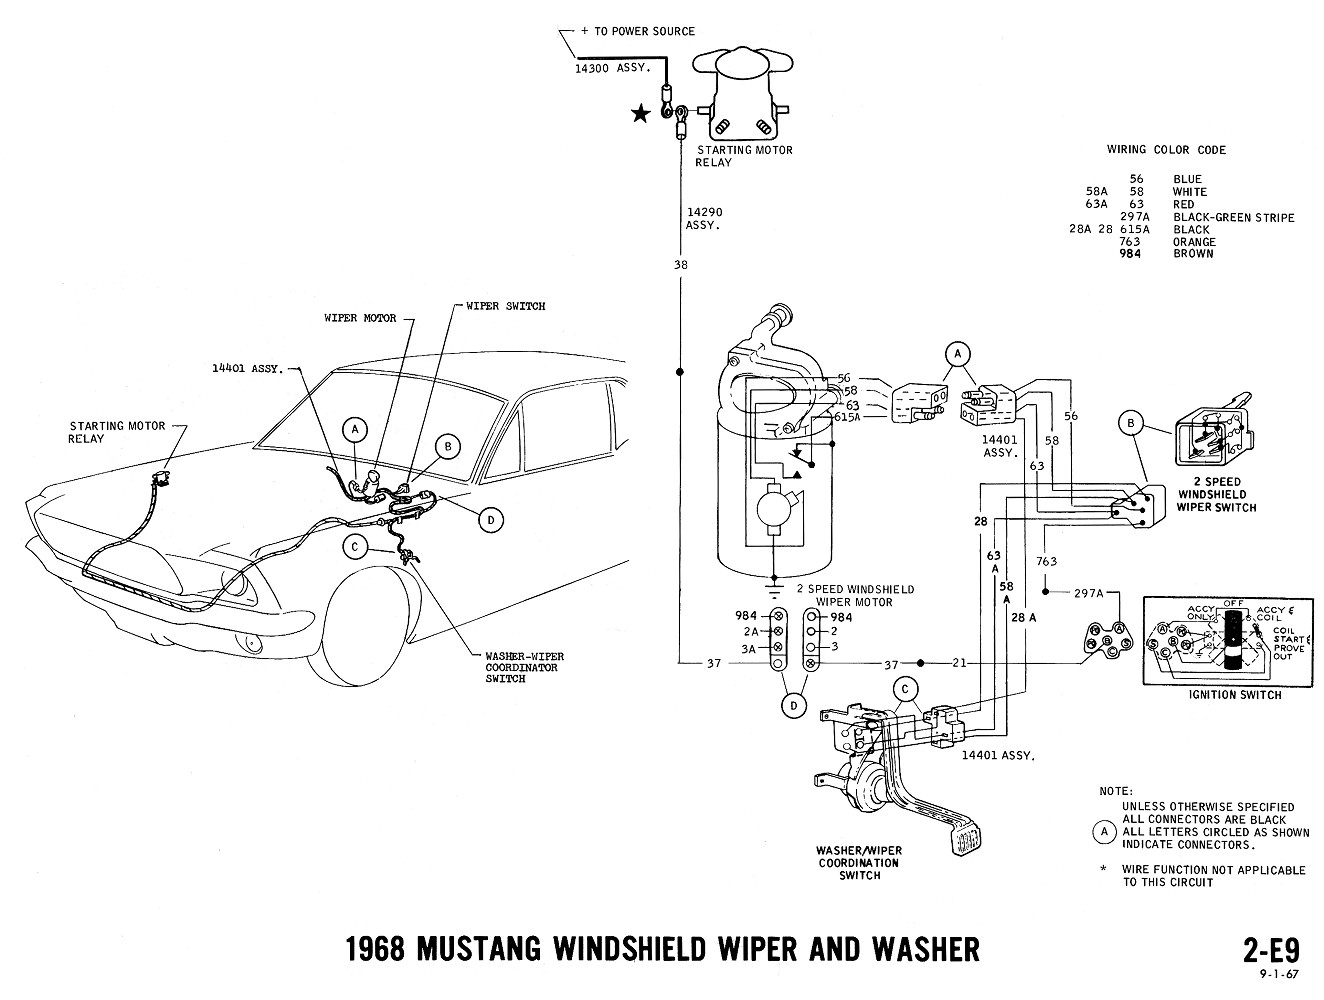 Diagram Wiper Switch Wiring Diagram 1968 Full Version Hd Quality Diagram 1968 Wirelessdiagramcomfontedel Fontedelleore It